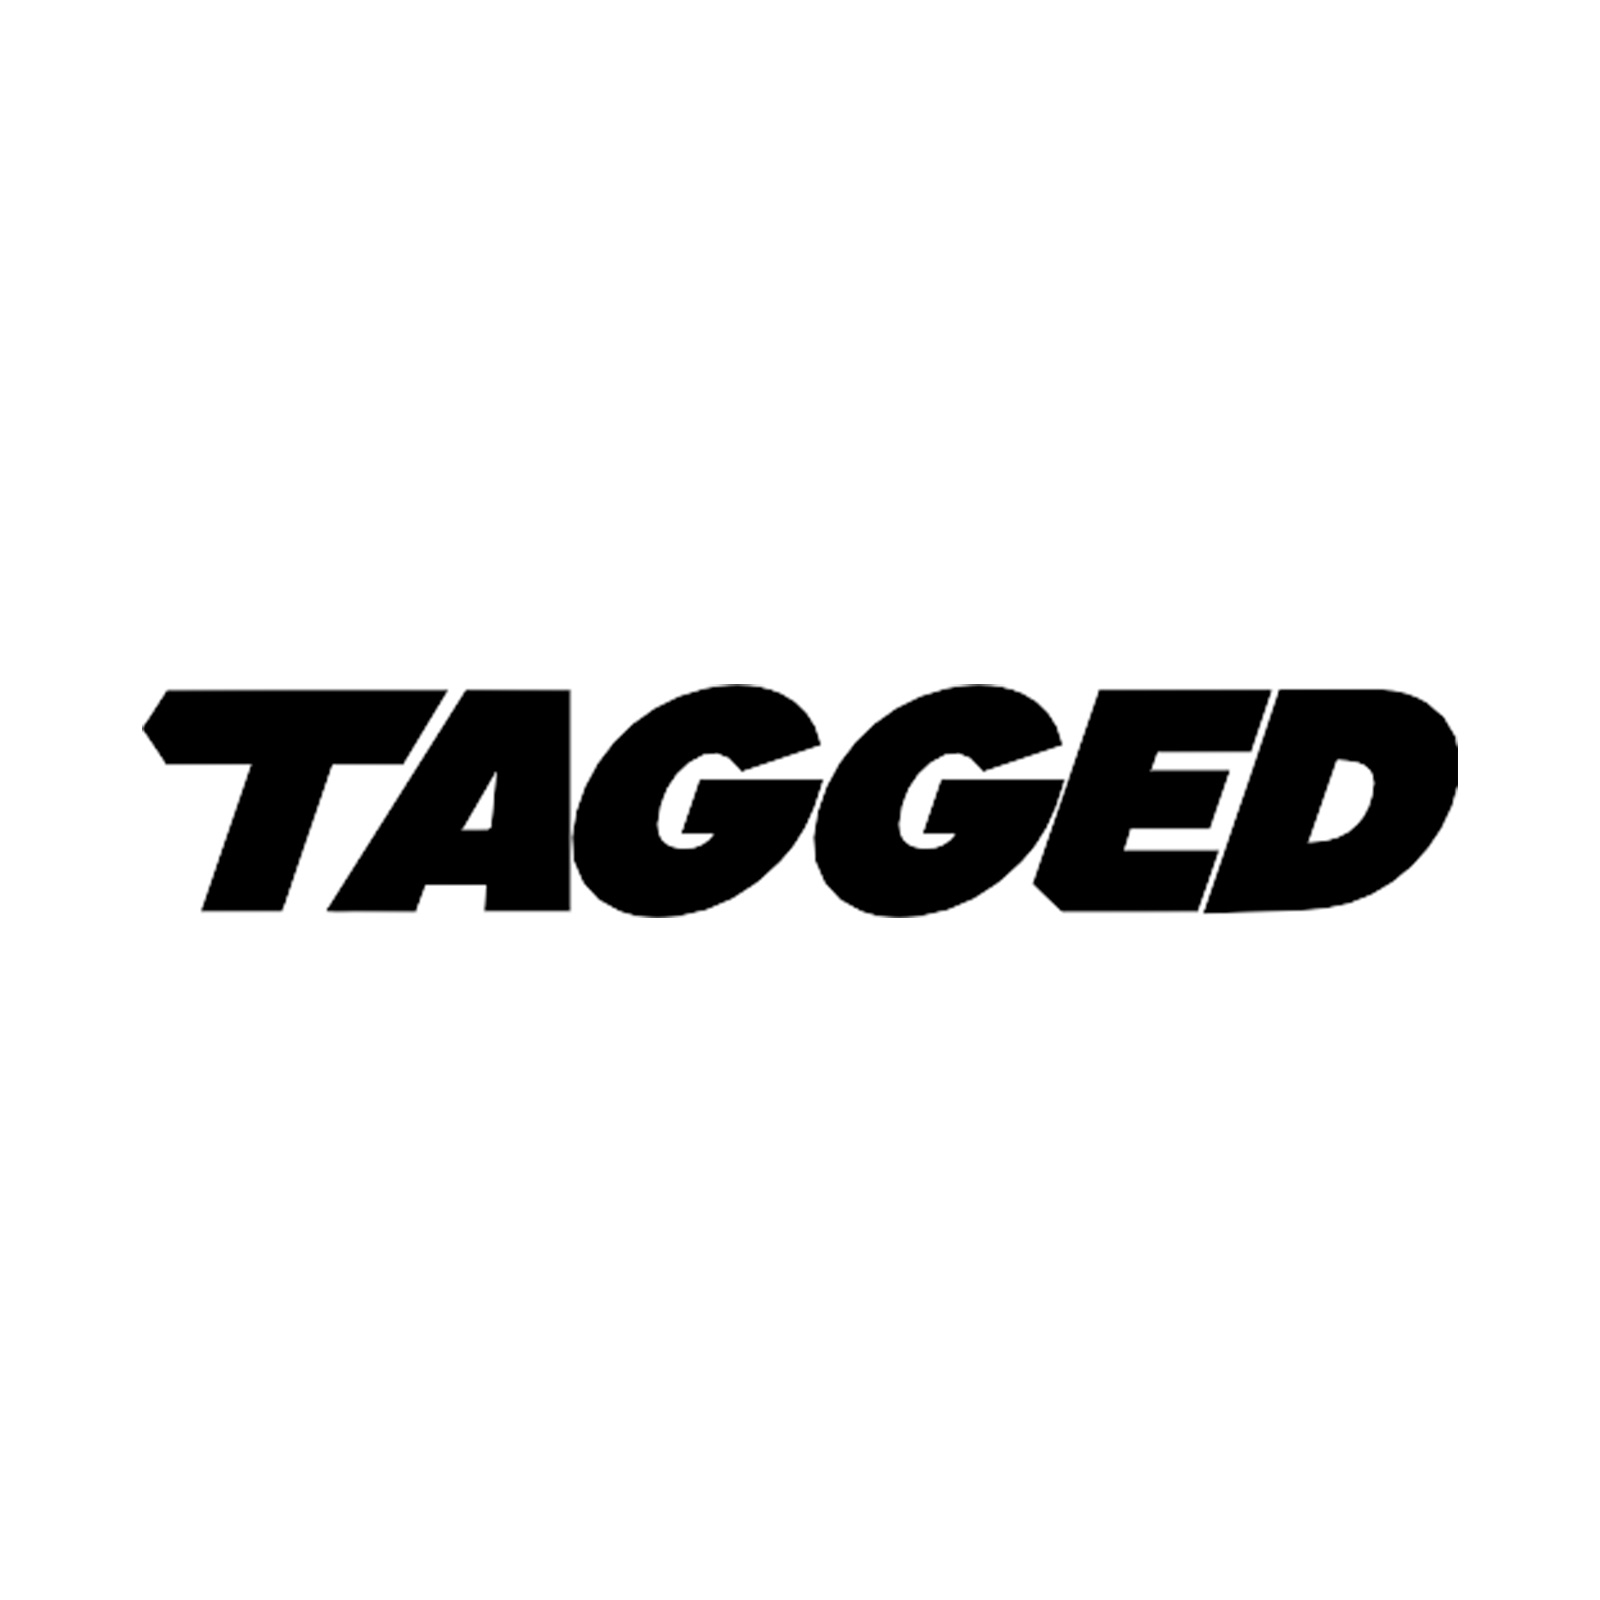 Tagged makes it easy to meet and socialize with new people through games, shared interests, friend suggestions, browsing profiles, and much more.